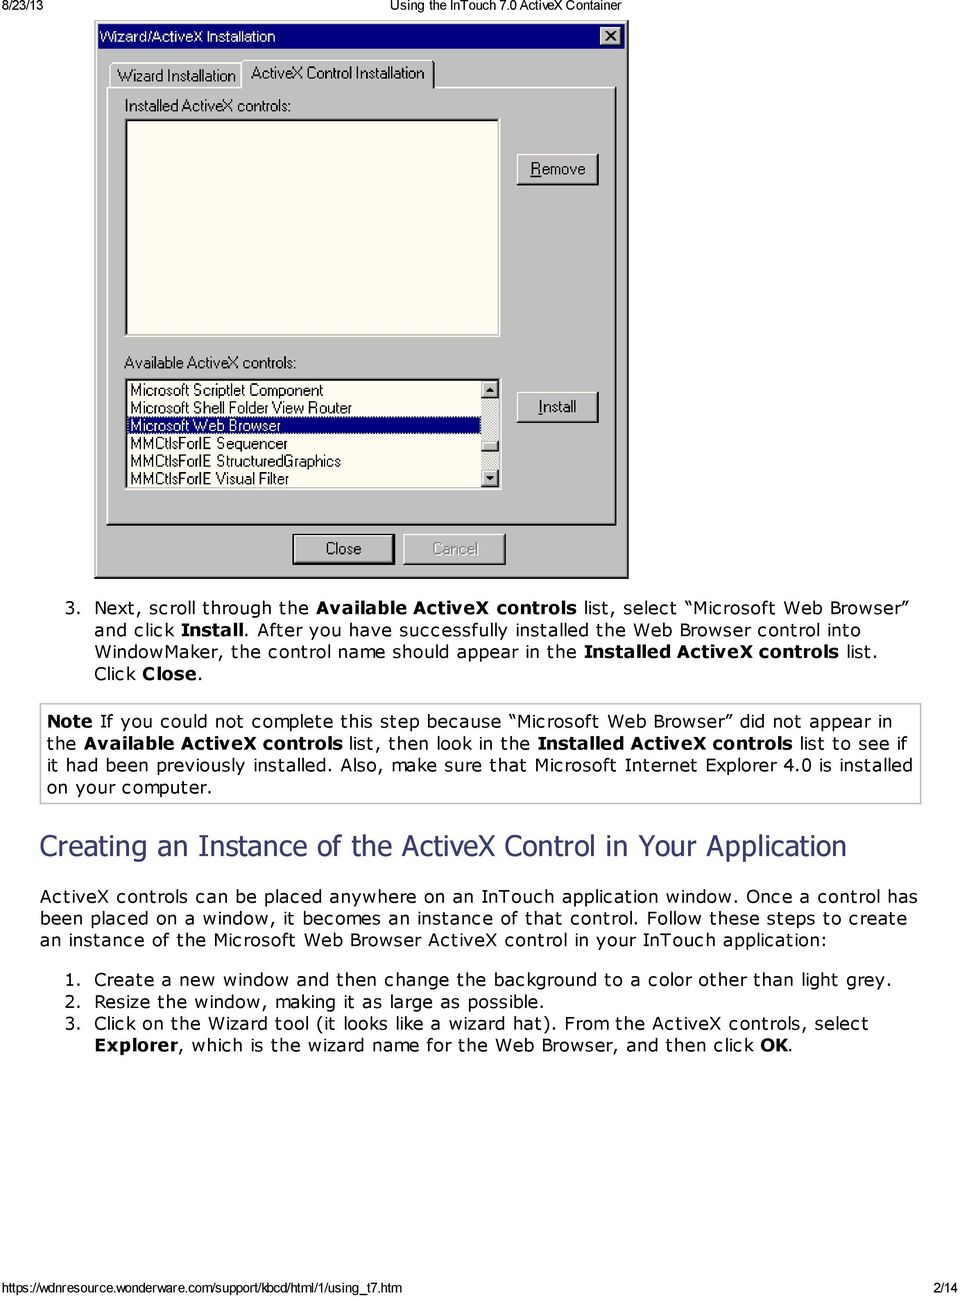 Installing An ActiveX Control in InTouch - PDF